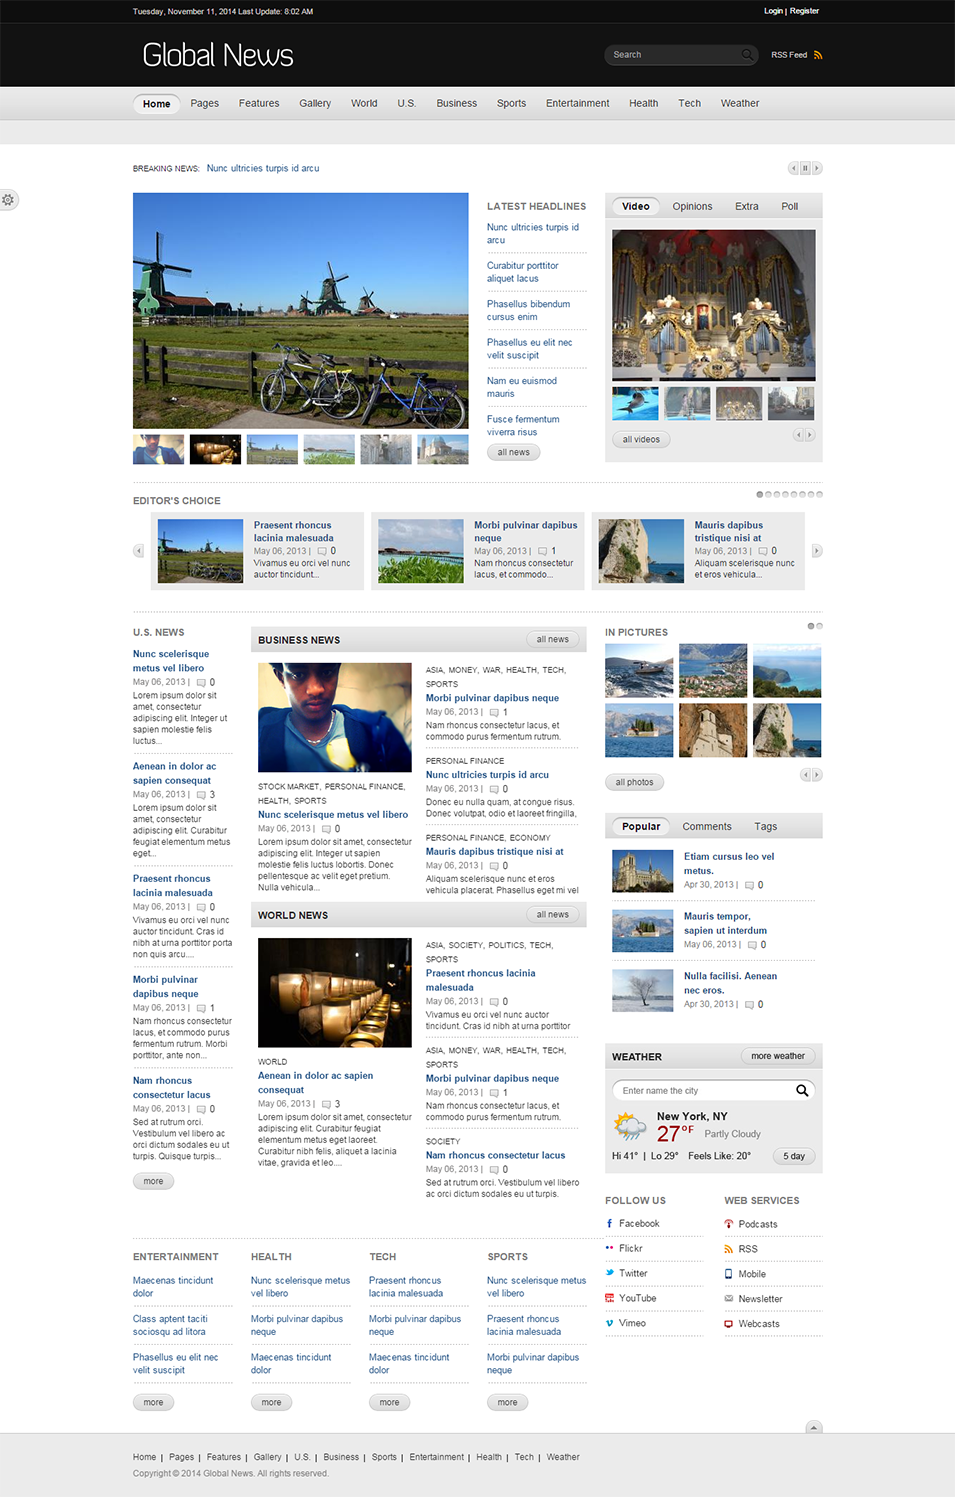 drupal news portal website templates  u0026 themes